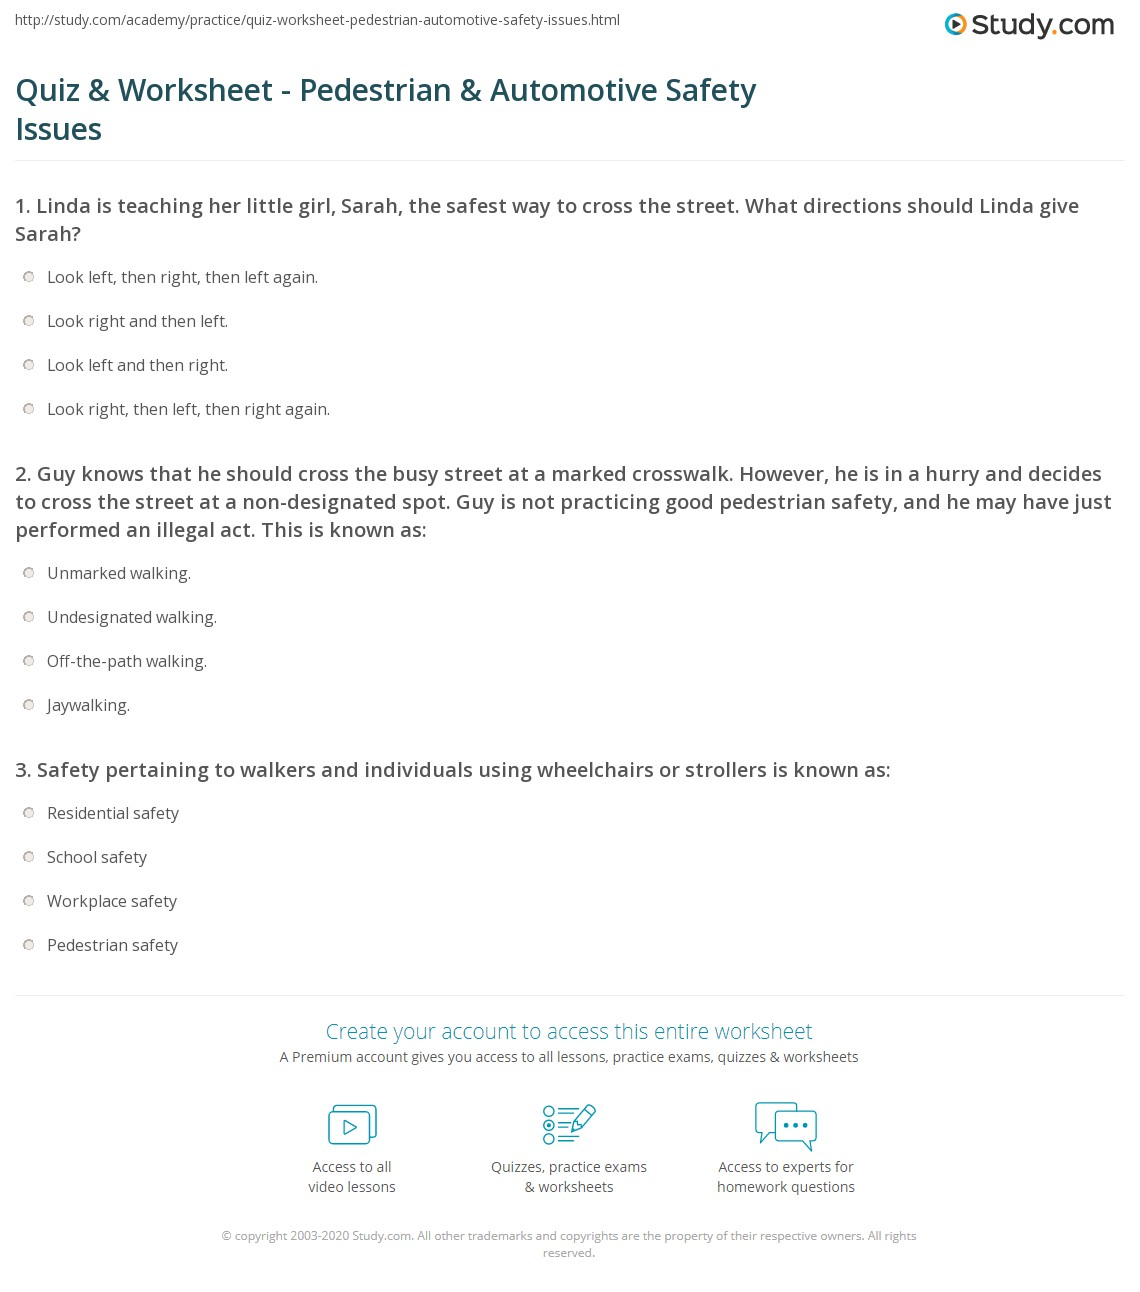 Printables Pedestrian Safety Worksheets quiz worksheet pedestrian automotive safety issues study com 1 guy knows that he should cross the busy street at a marked crosswalk however is in hurry and decides to the